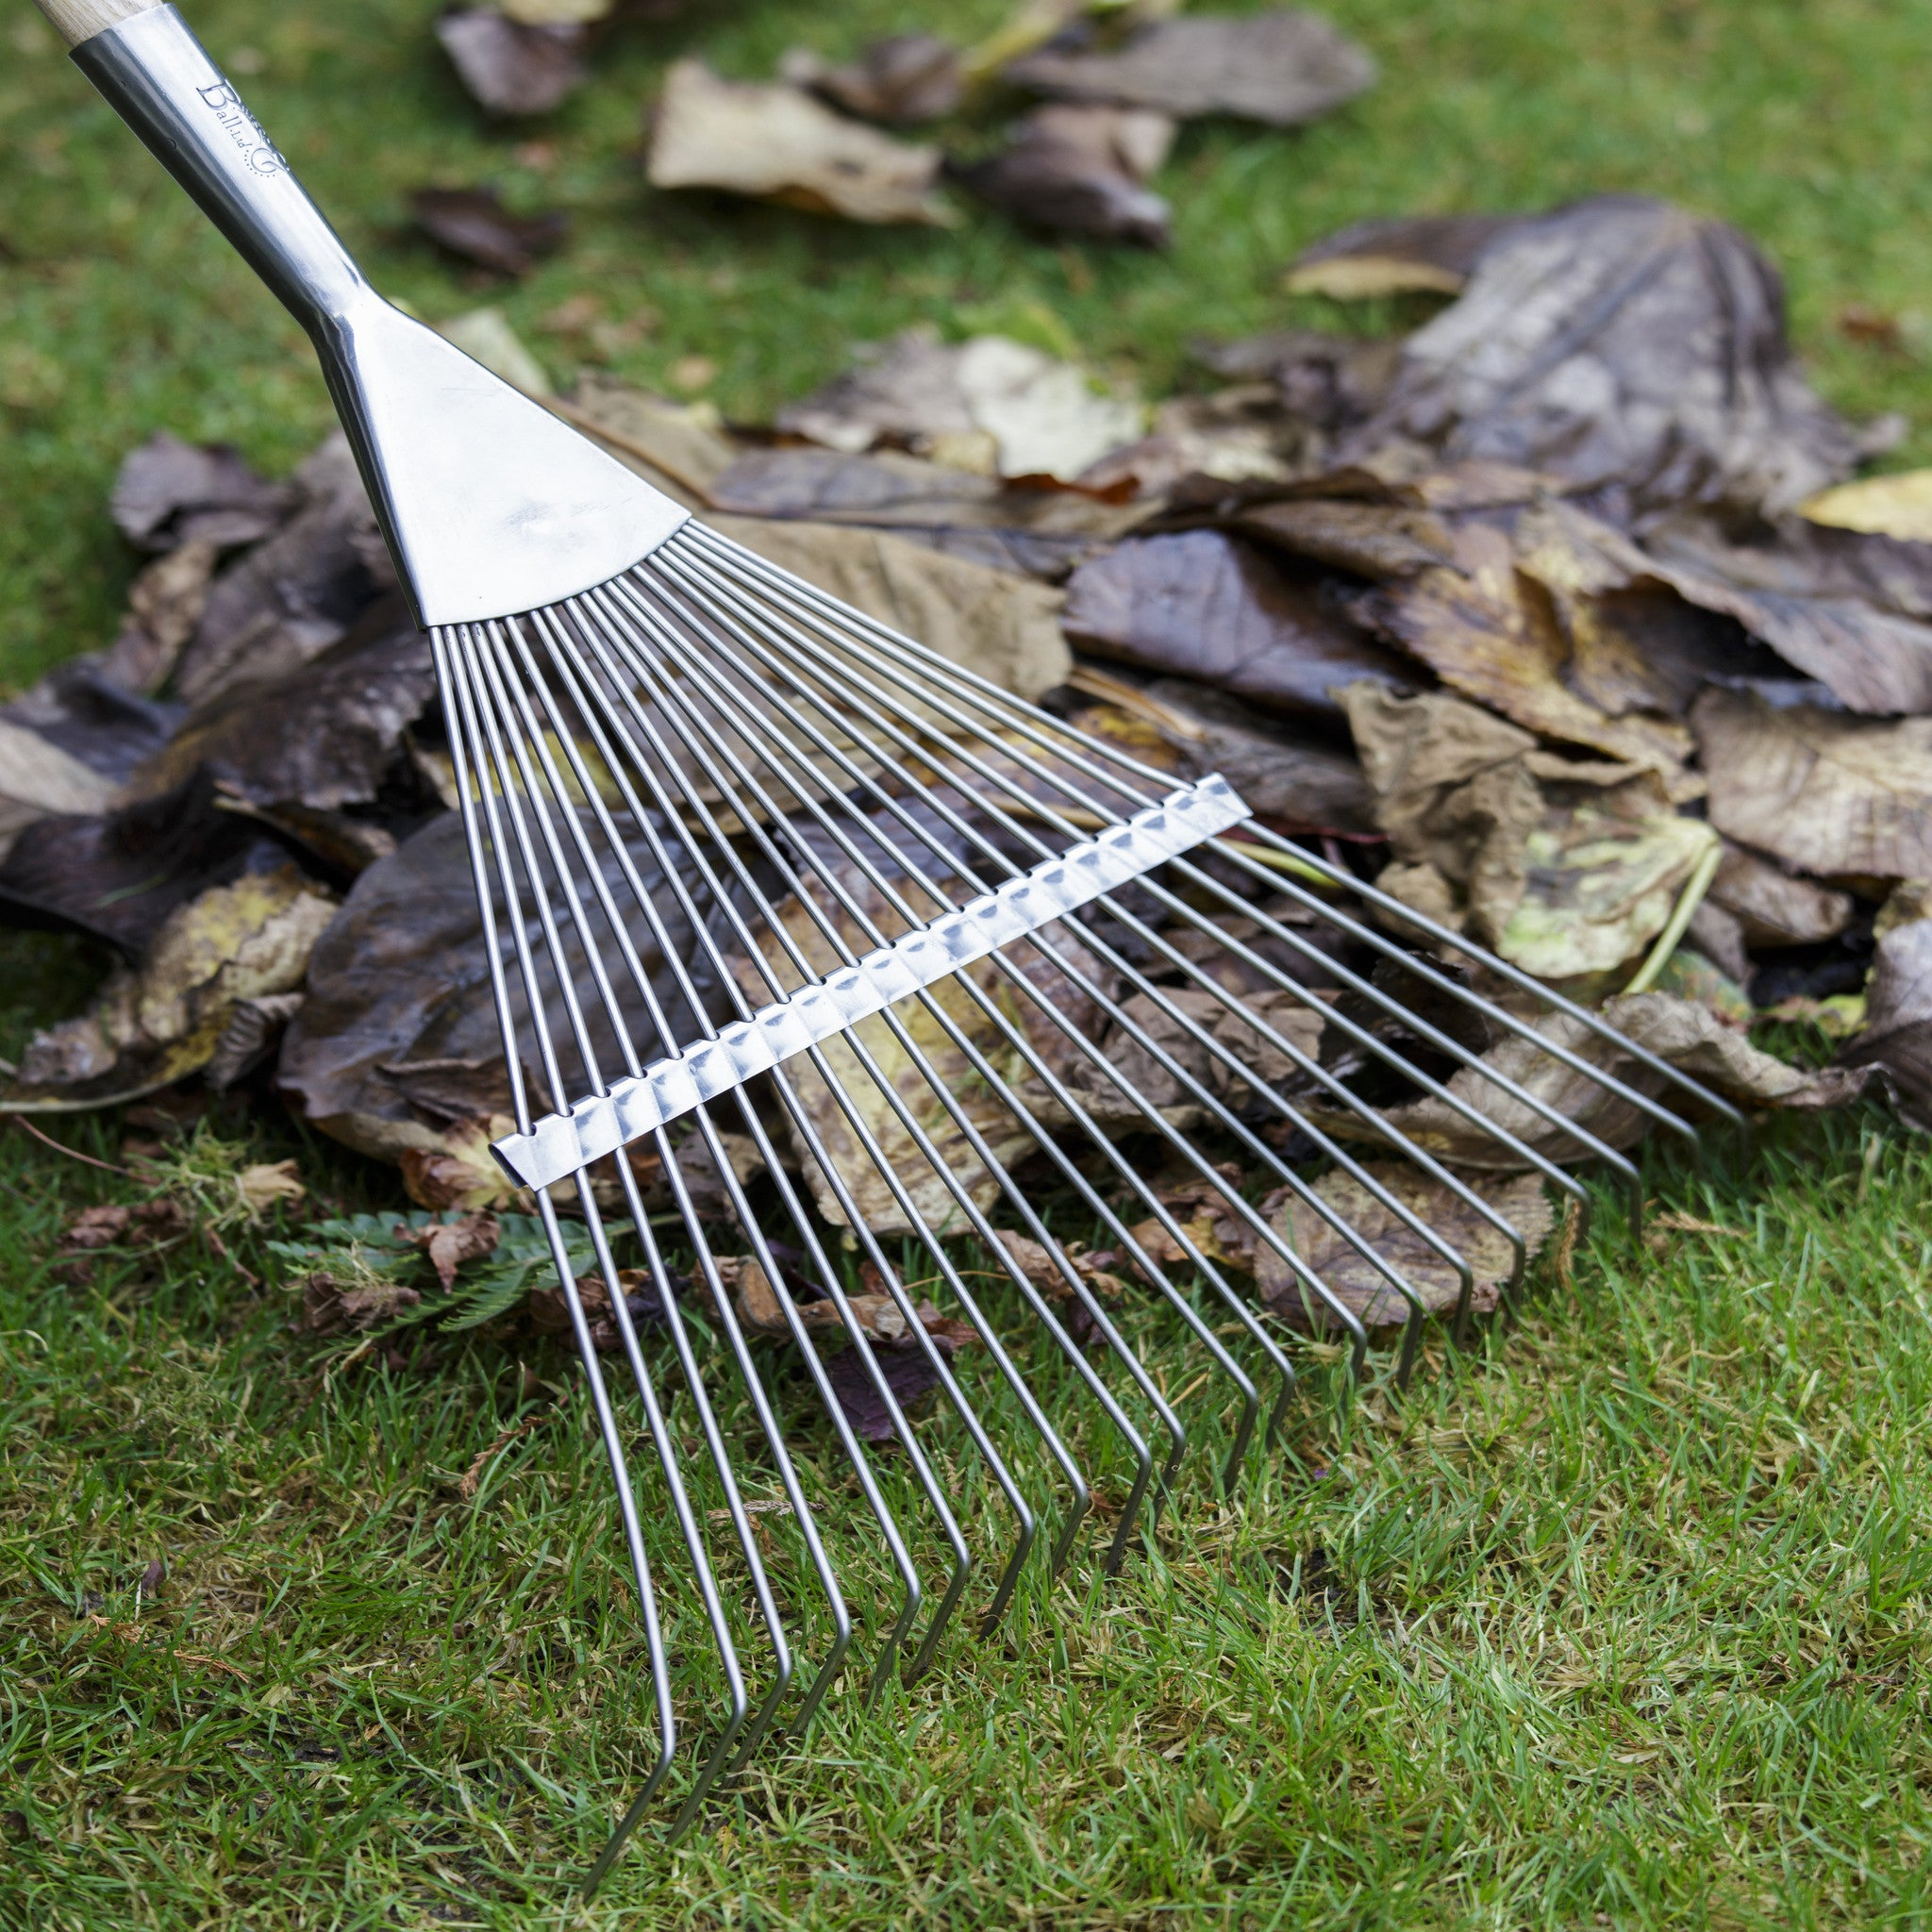 Flexi Tined Lawn Rake - Stainless Steel